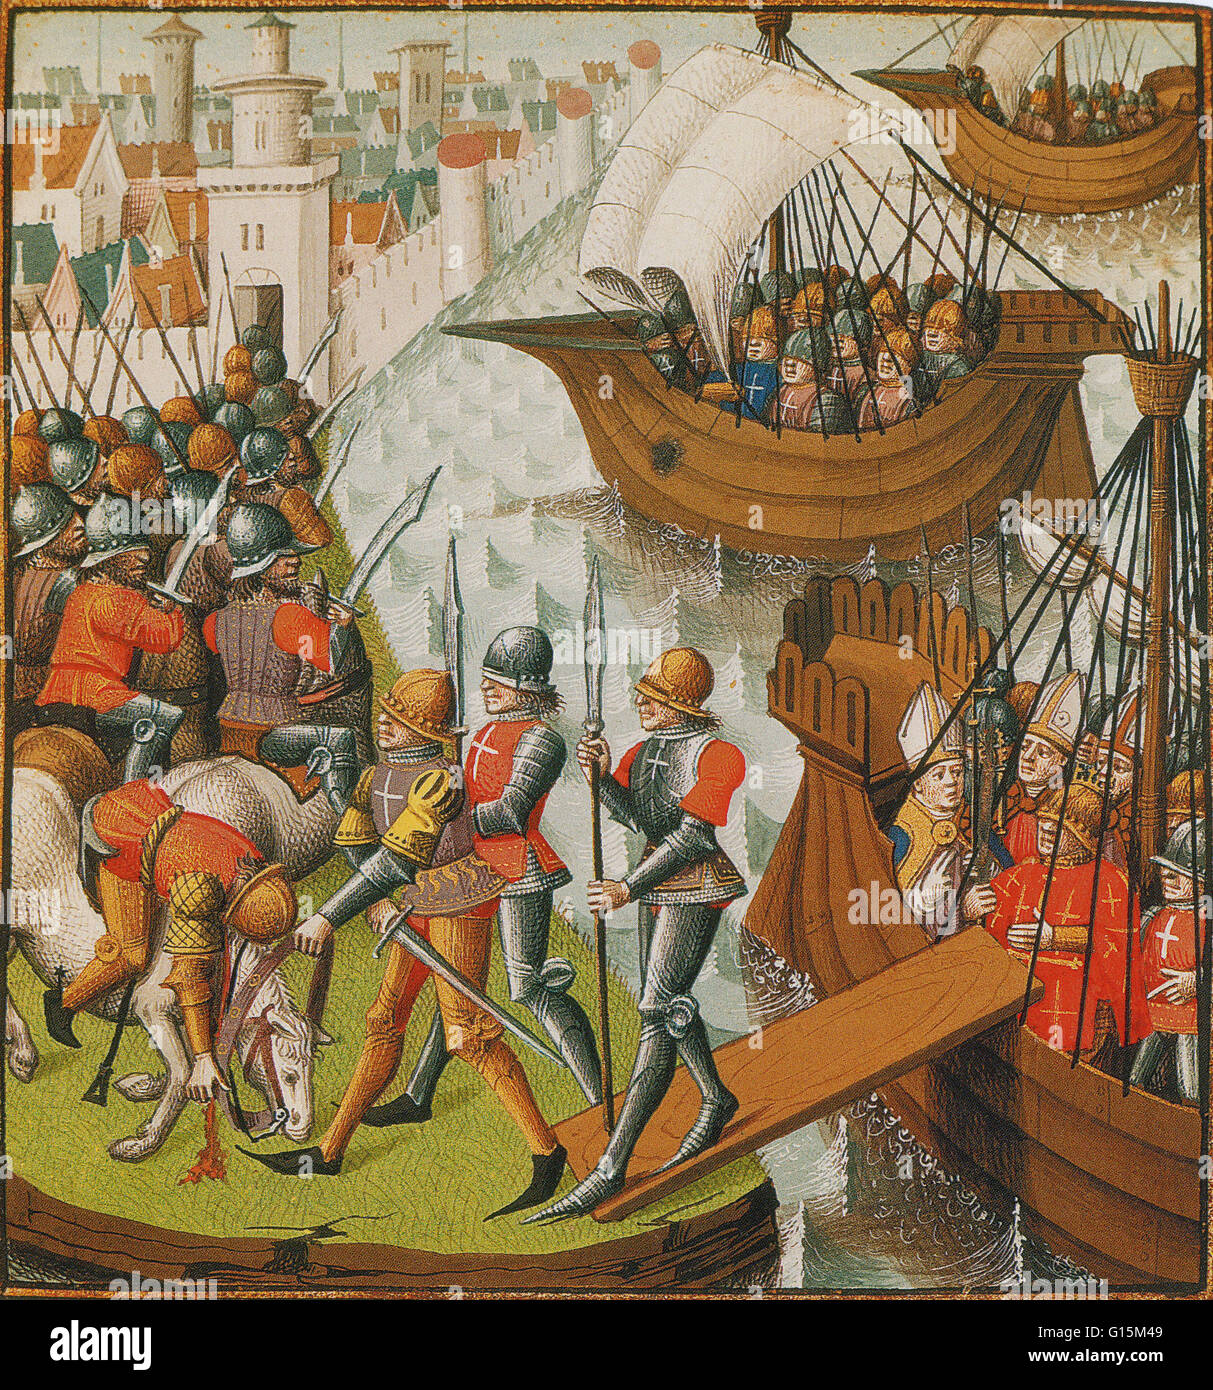 15th century illuminated manuscript shows the papal legate, Pelagius, waiting to disembark at Damietta, as troops - Stock Image